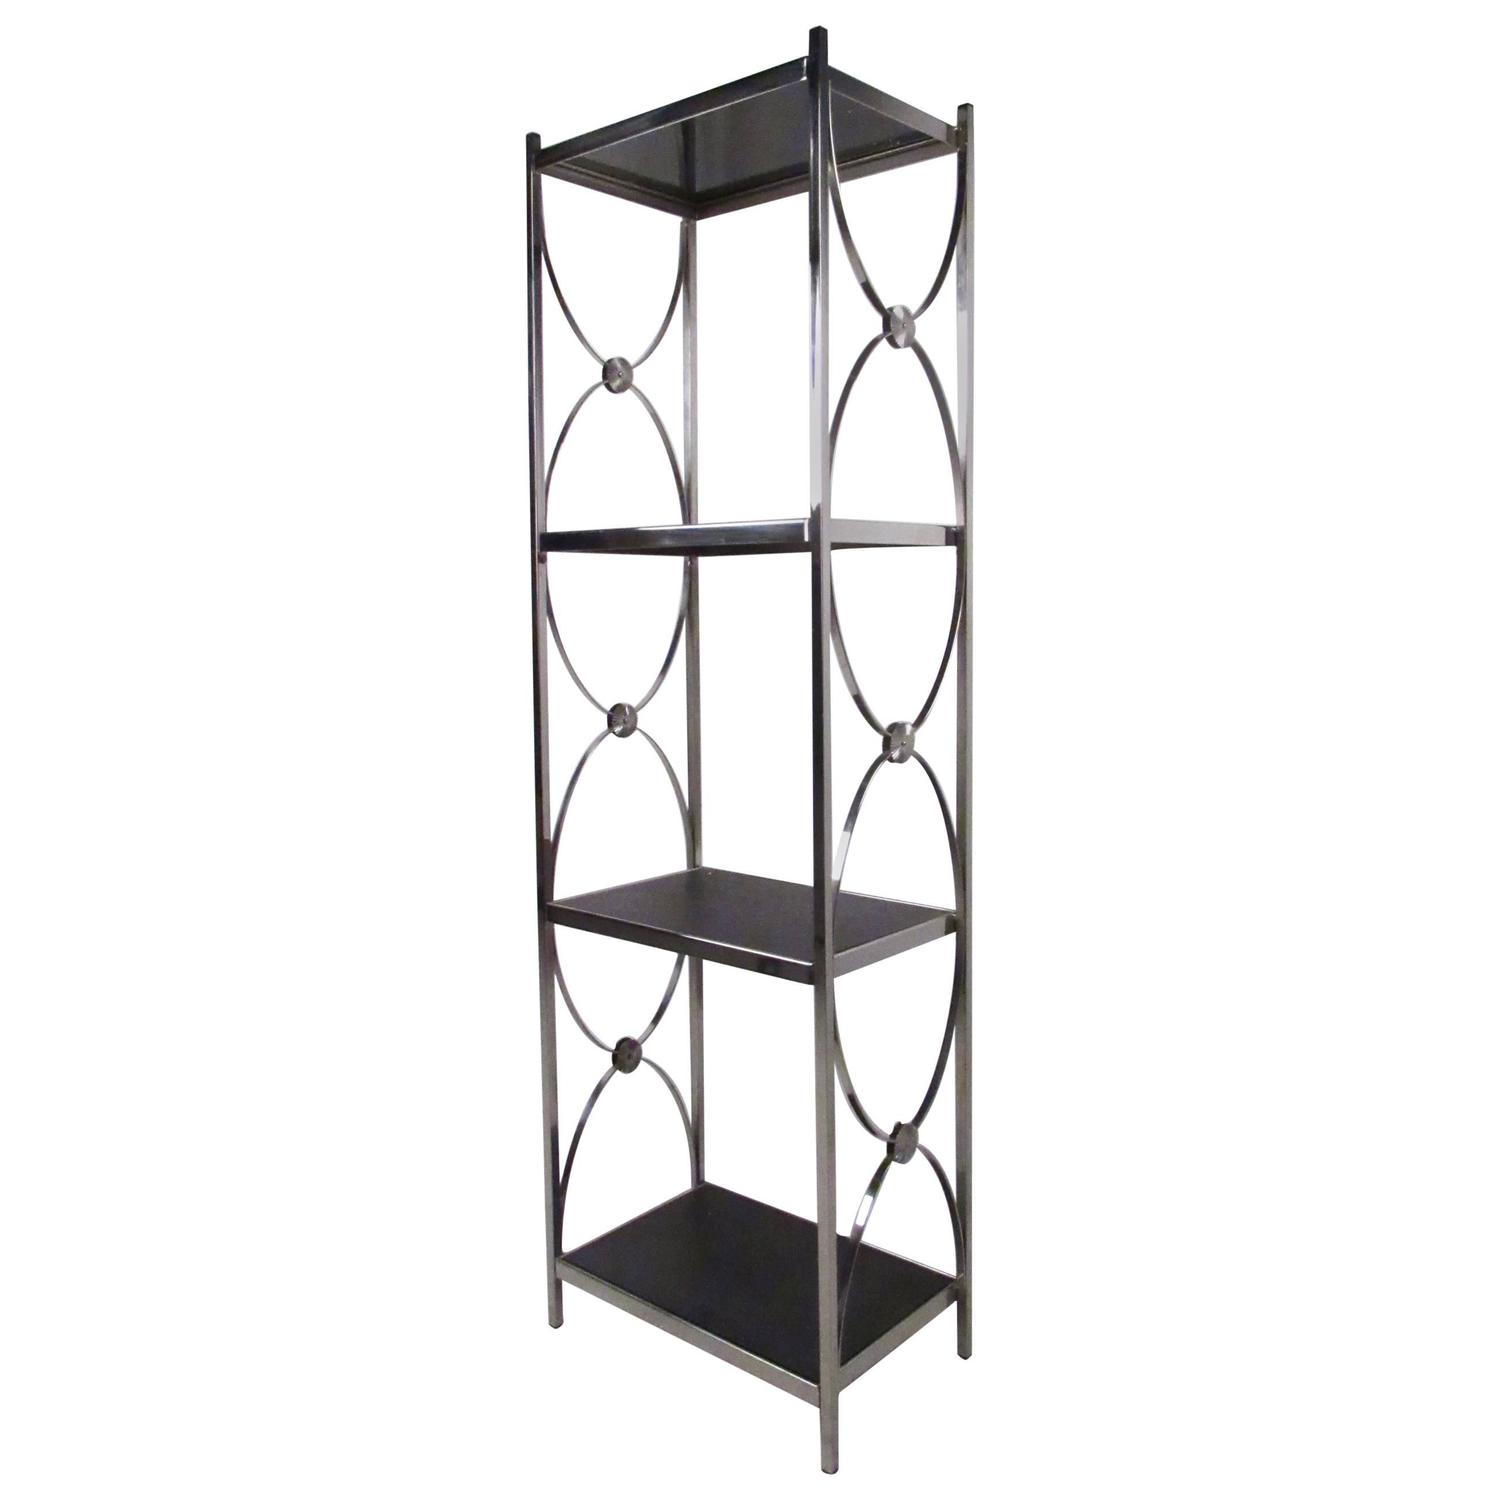 contemporary modern decorative chrome etagere display shelf for sale at 1stdibs. Black Bedroom Furniture Sets. Home Design Ideas